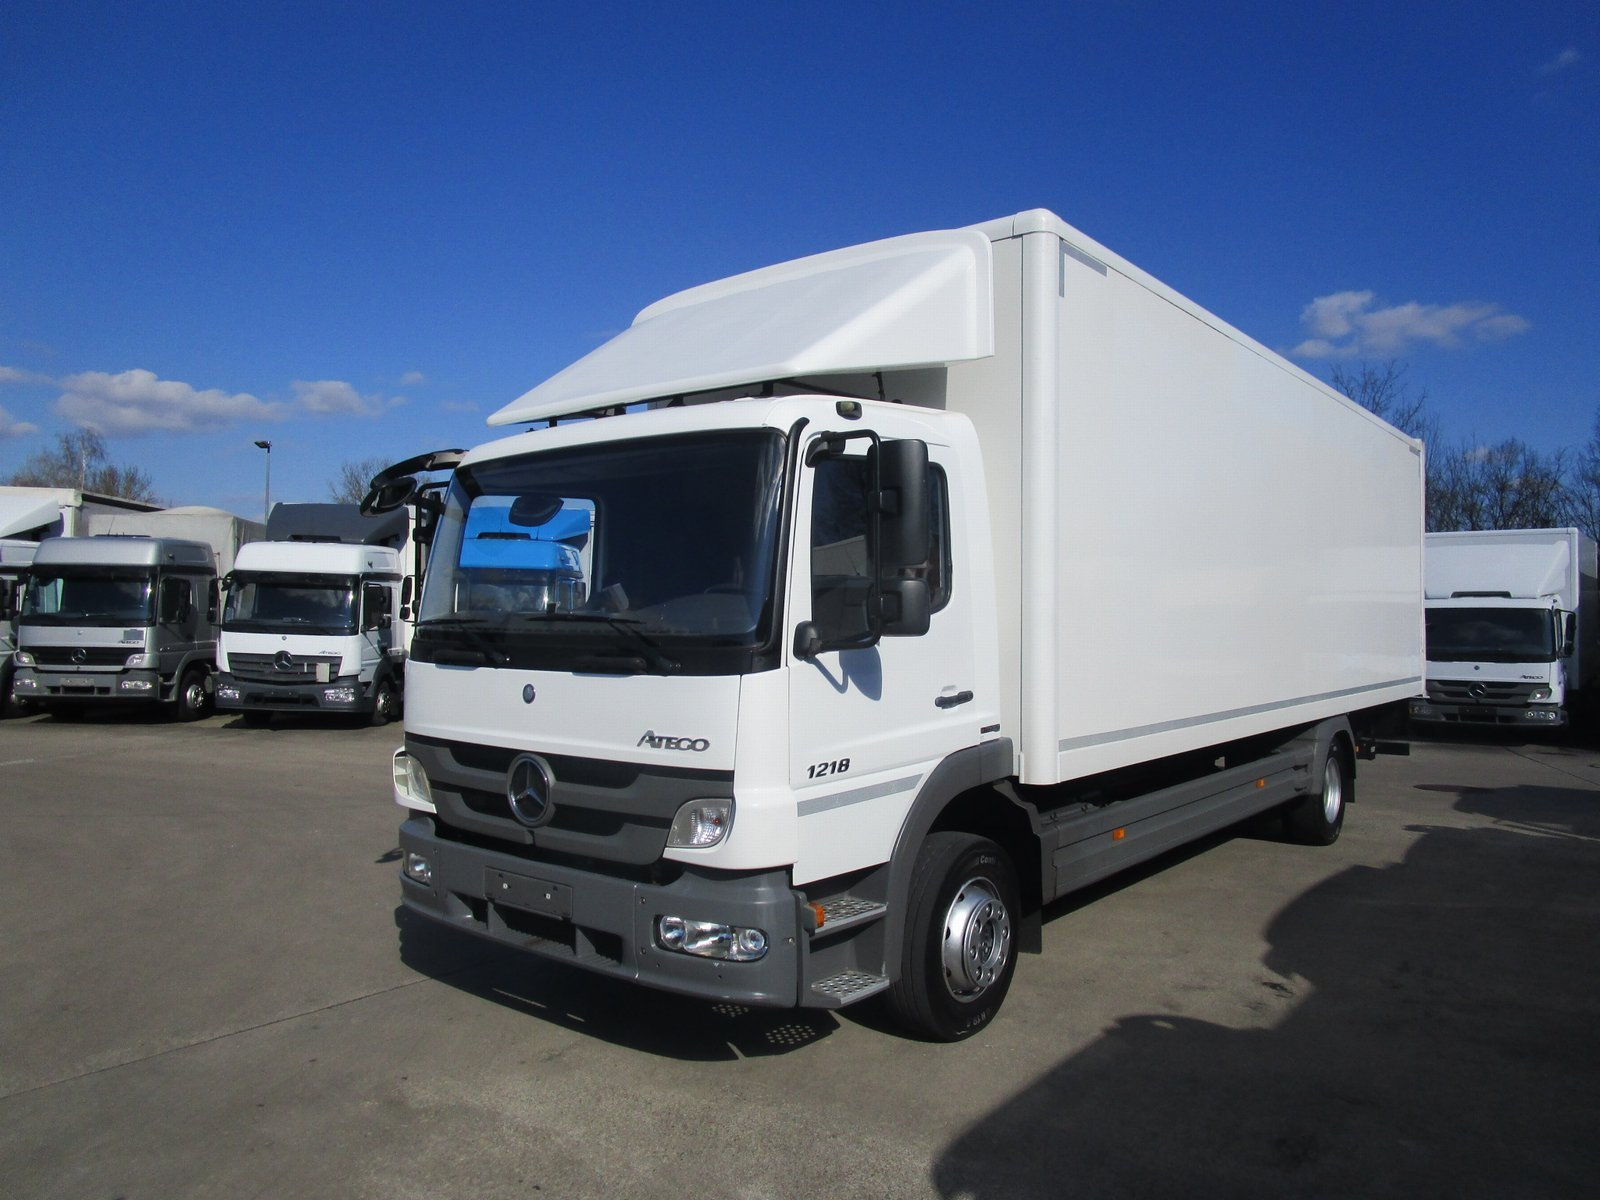 ATEGO III 1218 L Isolierkoffer 8,1m LBW 1,25 to.